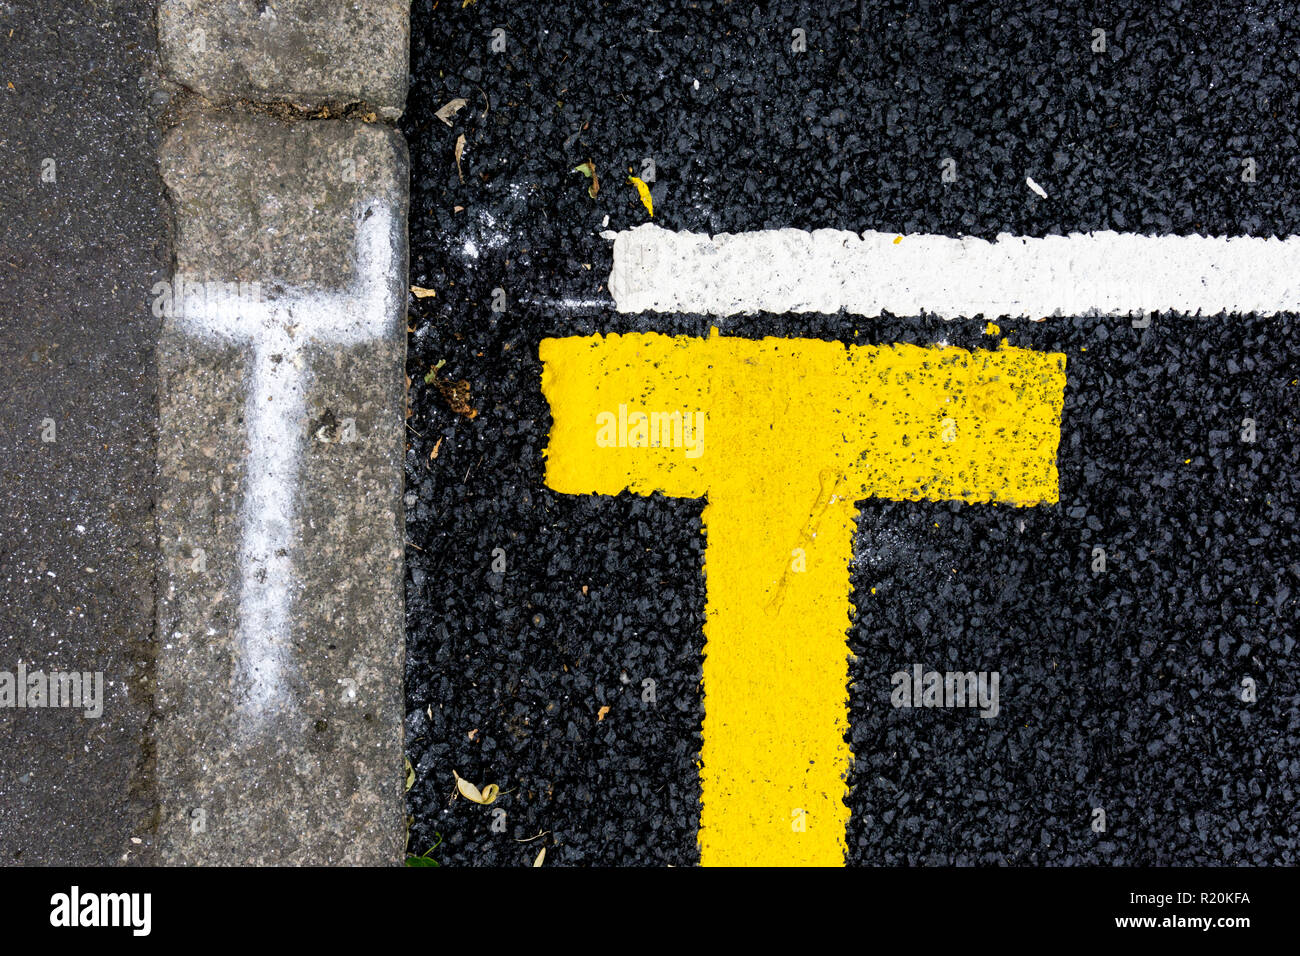 New road markings.  Yellow line and parking bay. - Stock Image